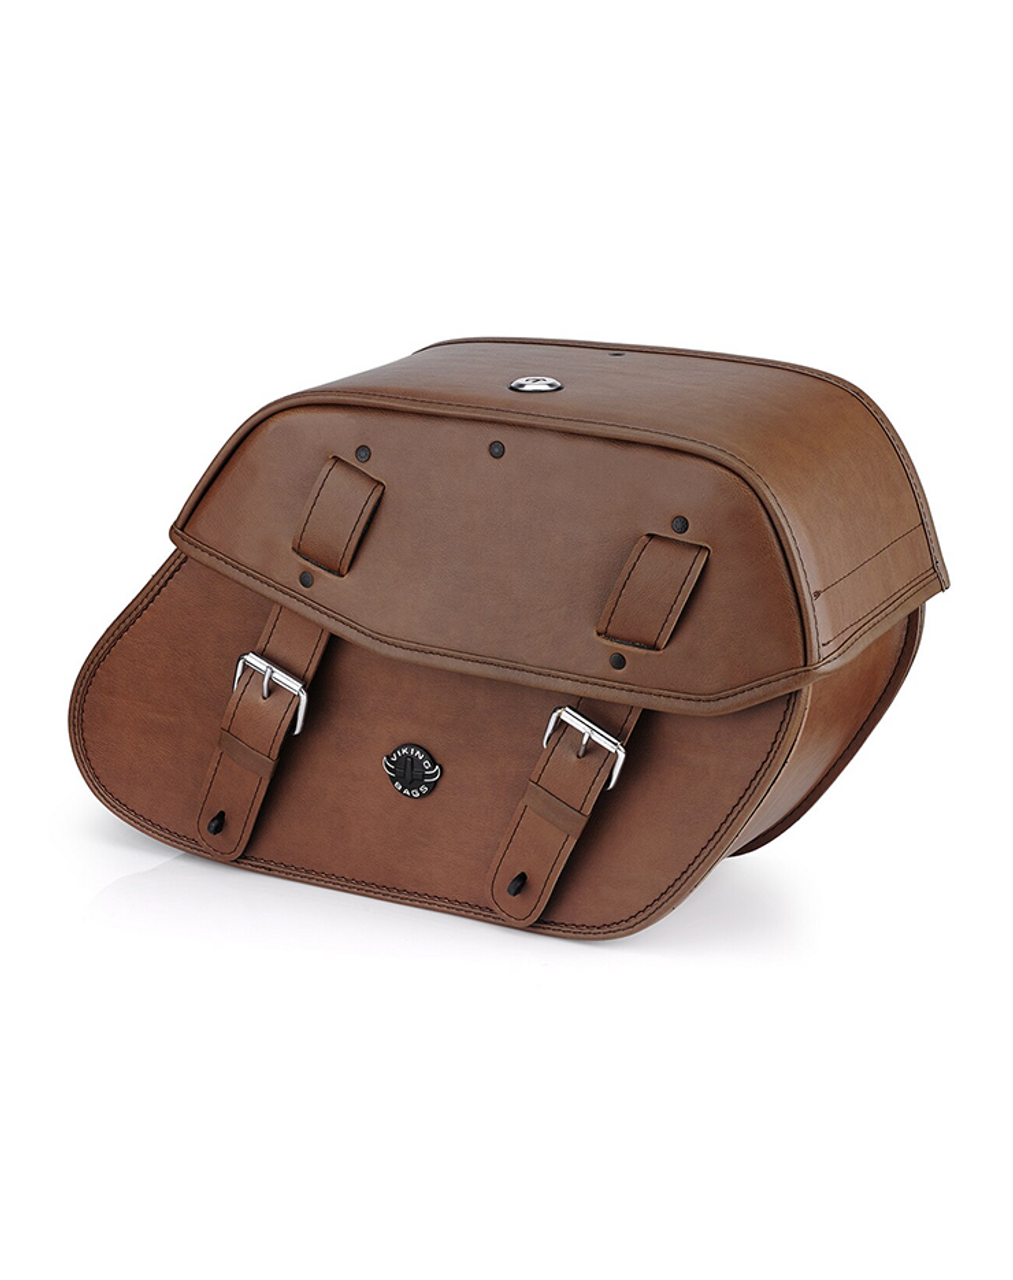 Viking Odin Brown Large Motorcycle Saddlebags For Harley Softail Night Train FXSTB Main View